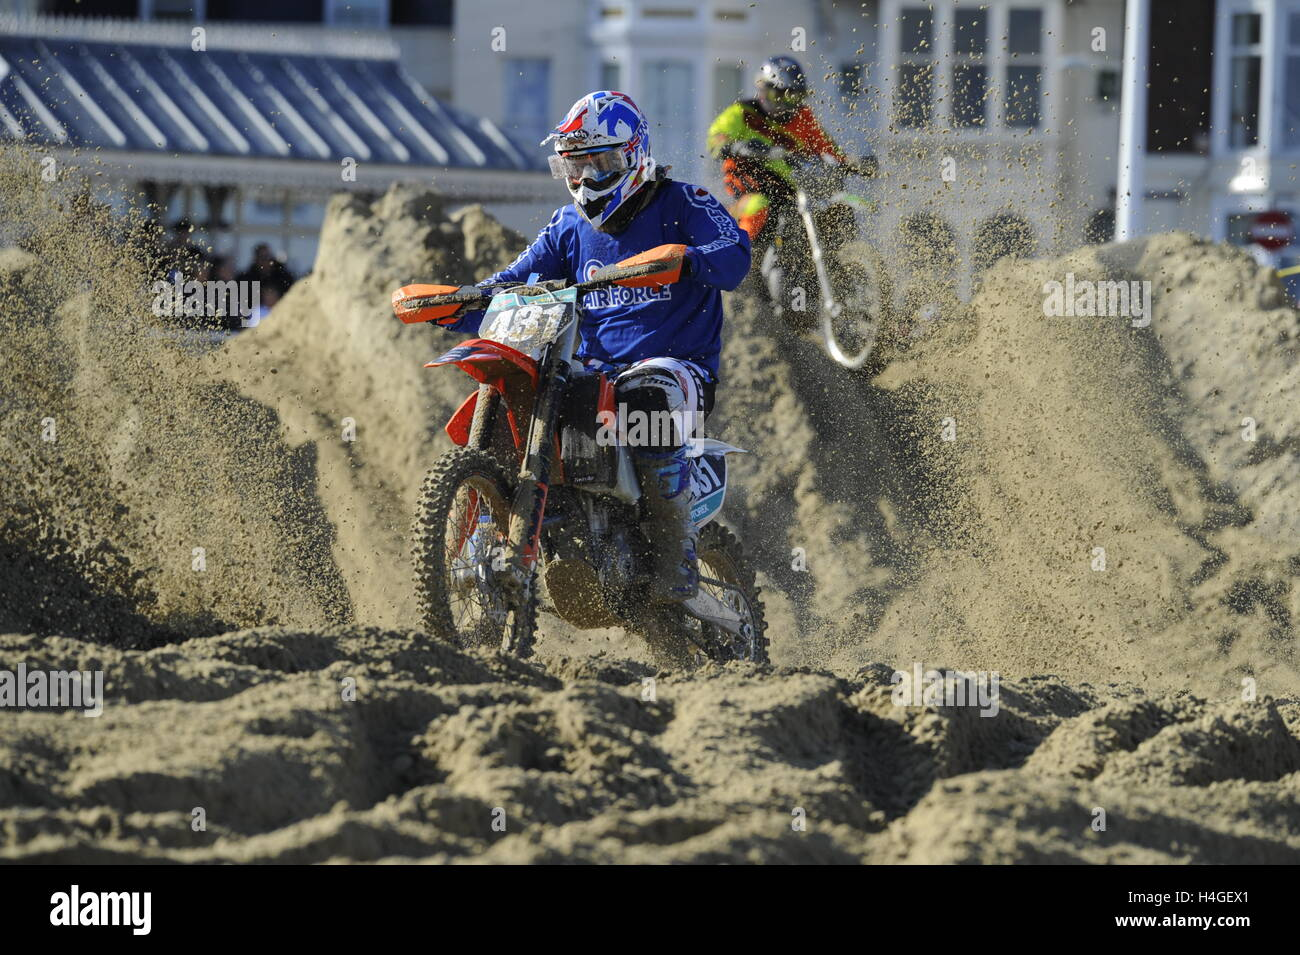 Weymouth, Dorset, UK.  16th October 2016. Competitors on their bikes testing themselves on the demanding circuit  of the Weymouth Lions Beach Motocross.  Photo by Graham Hunt/Alamy Live News Stock Photo